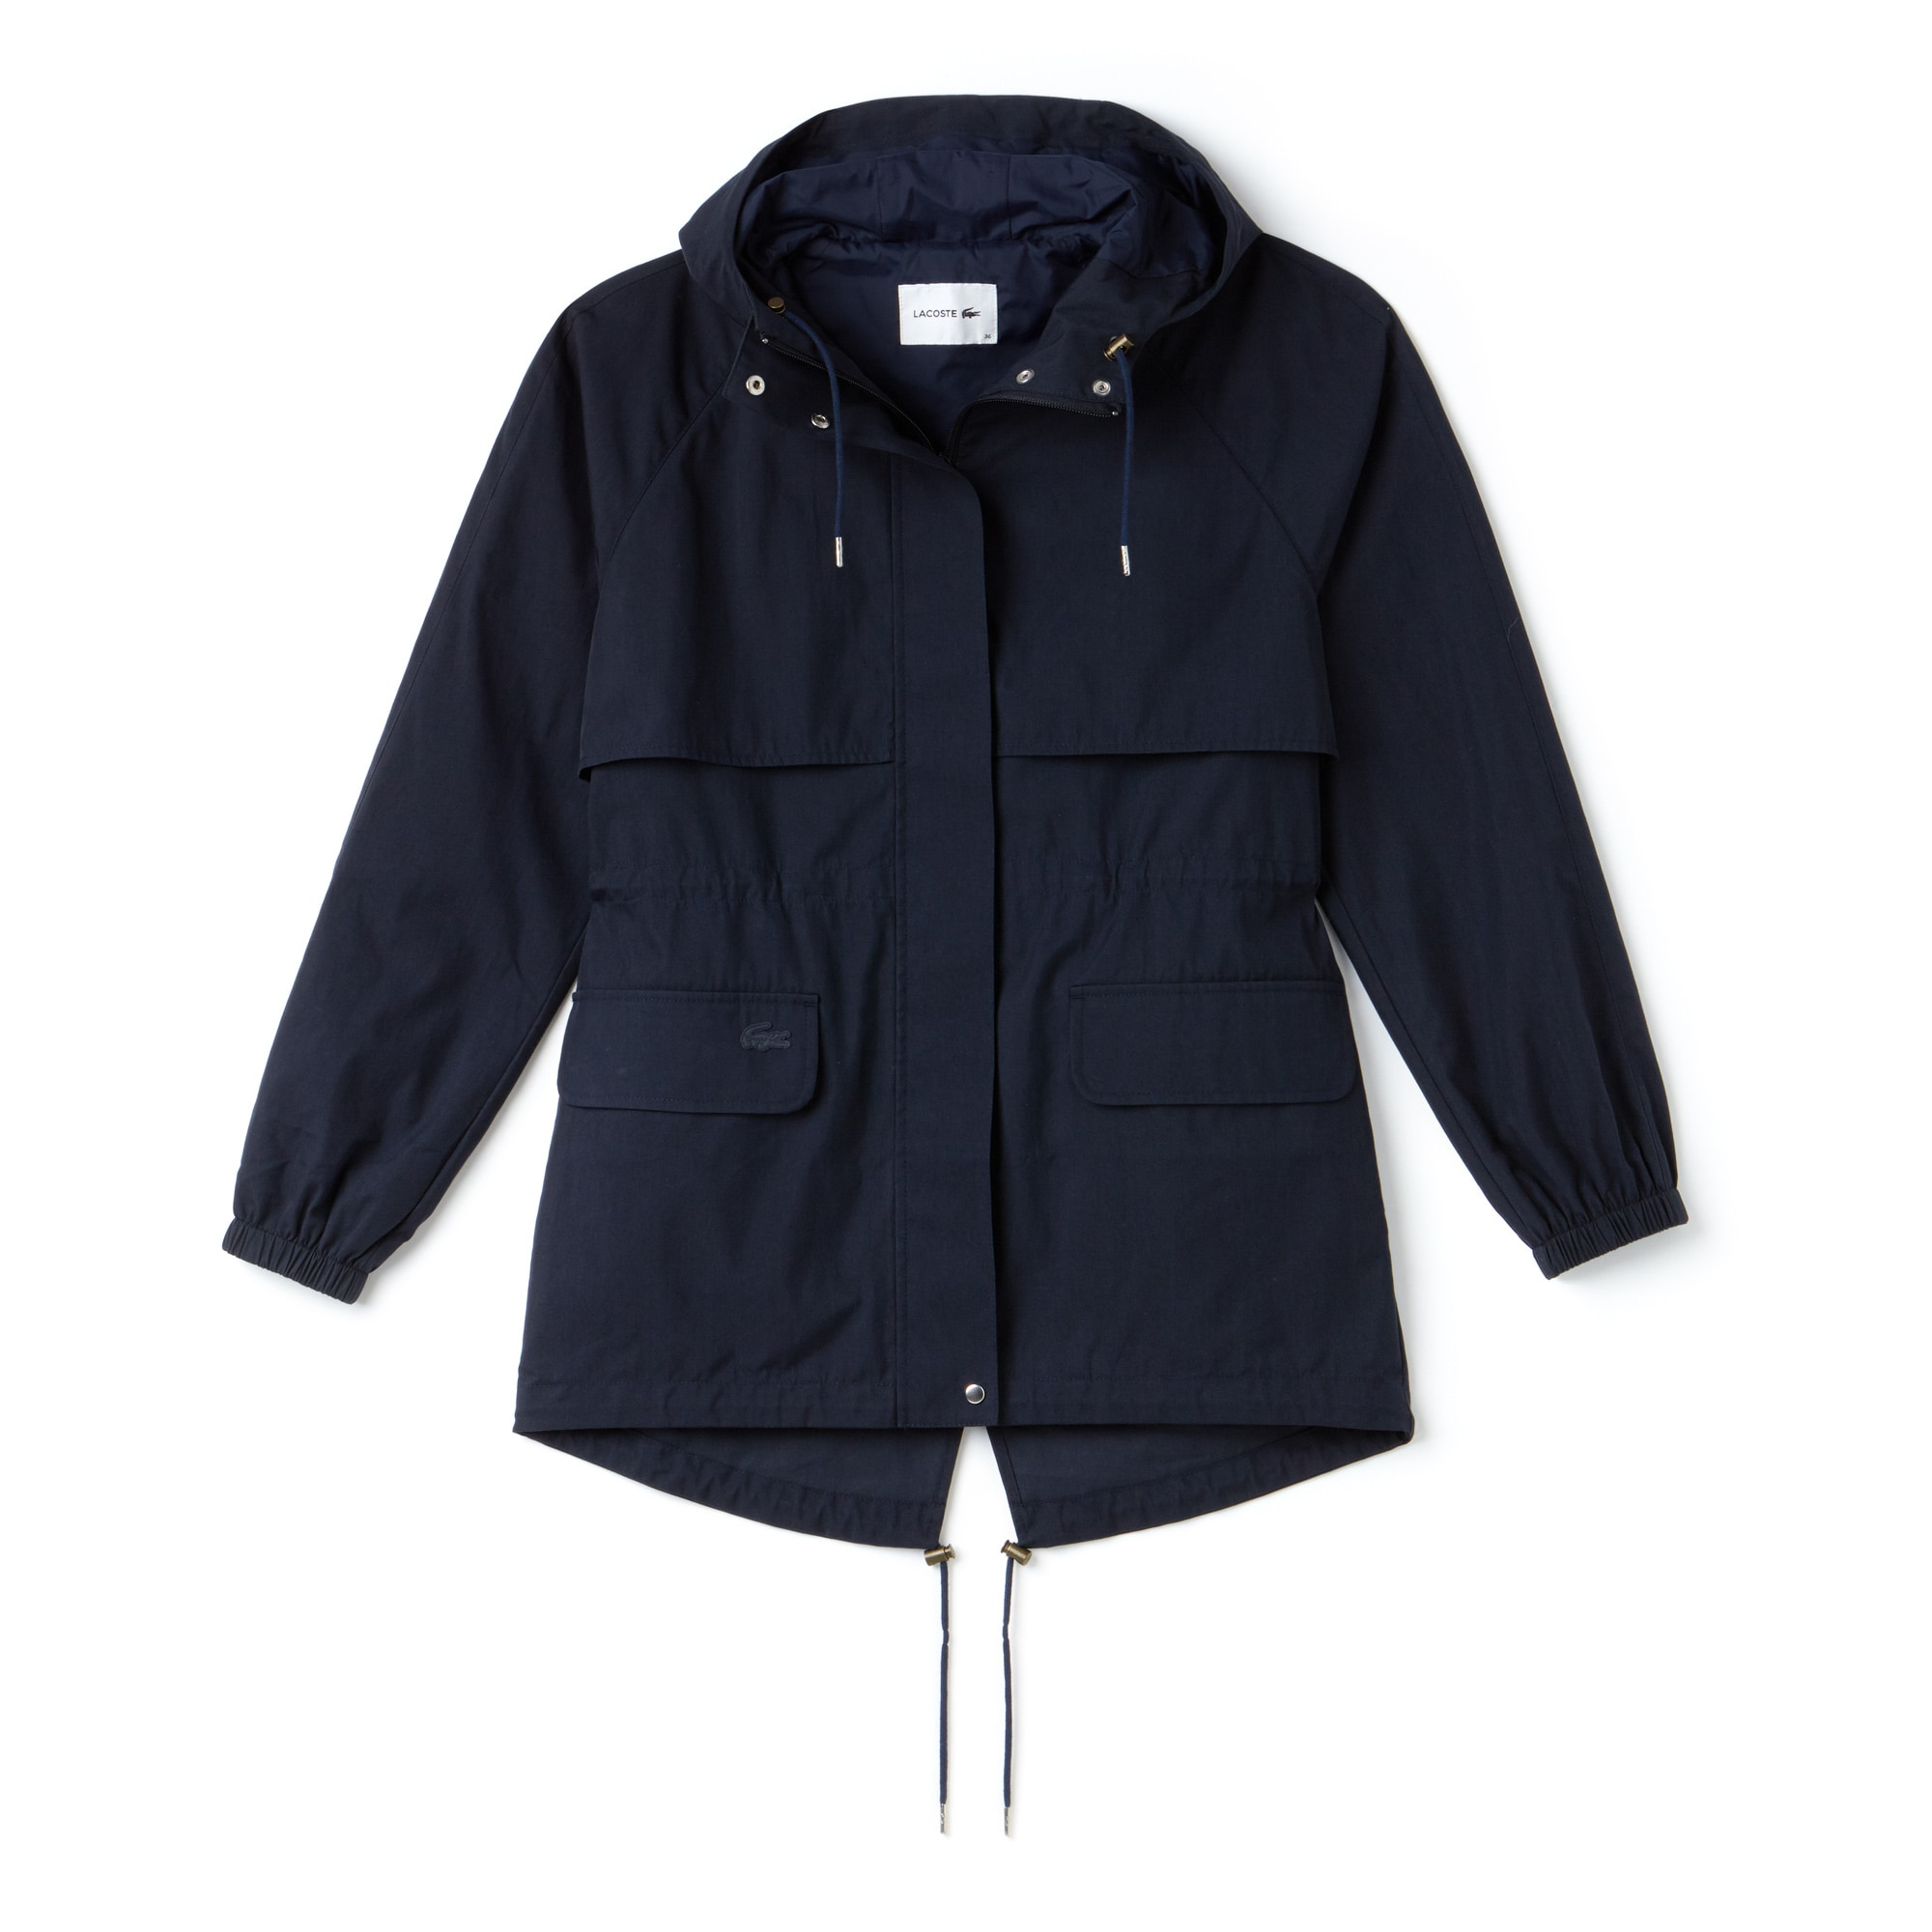 Women's Hooded Long Cotton Twill Windbreaker